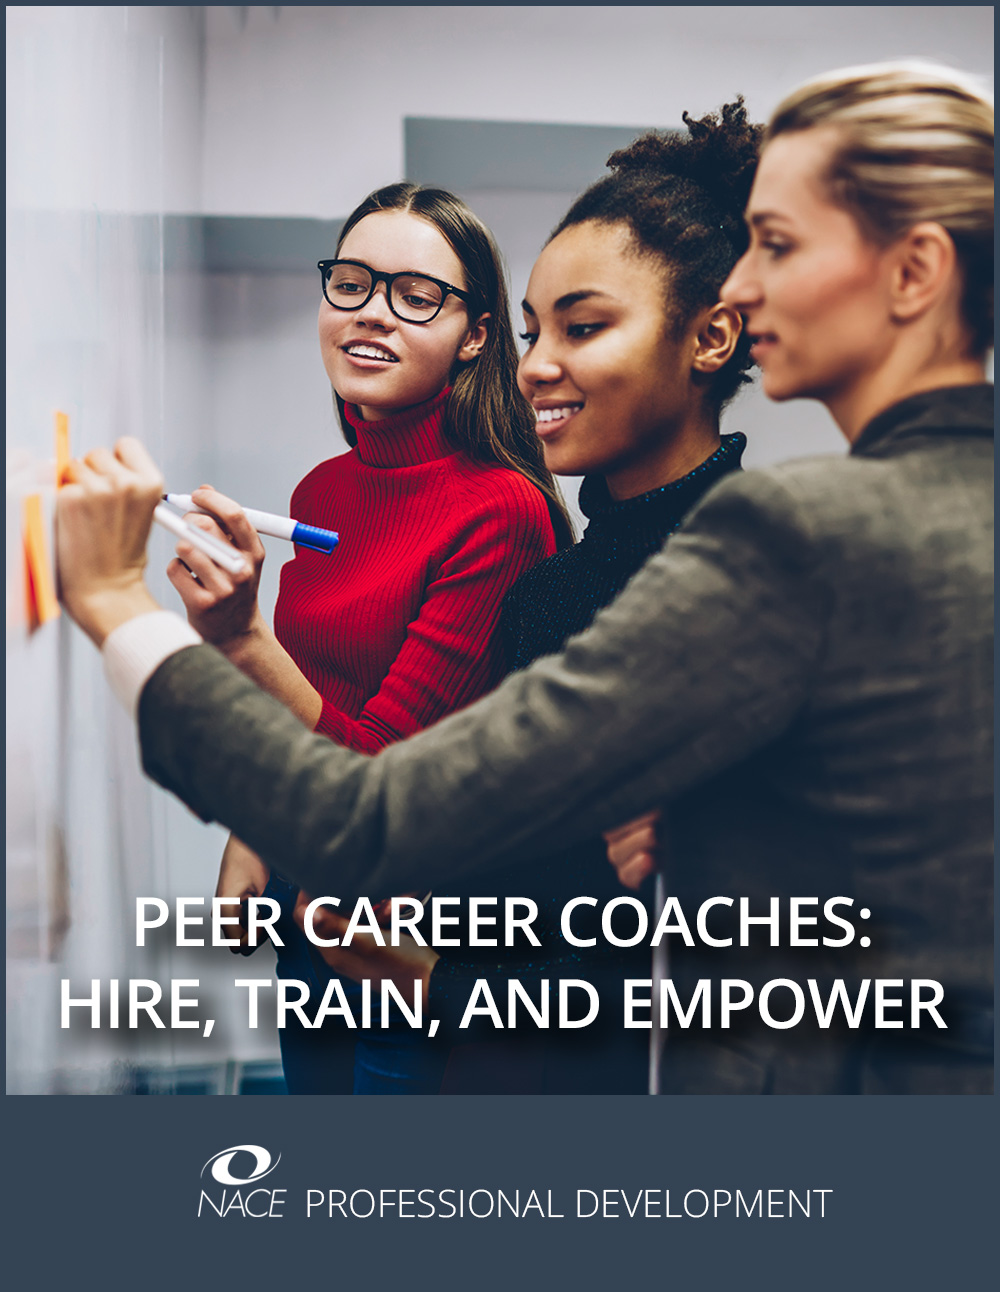 Peer Career Coaches: Hire, Train, and Empower